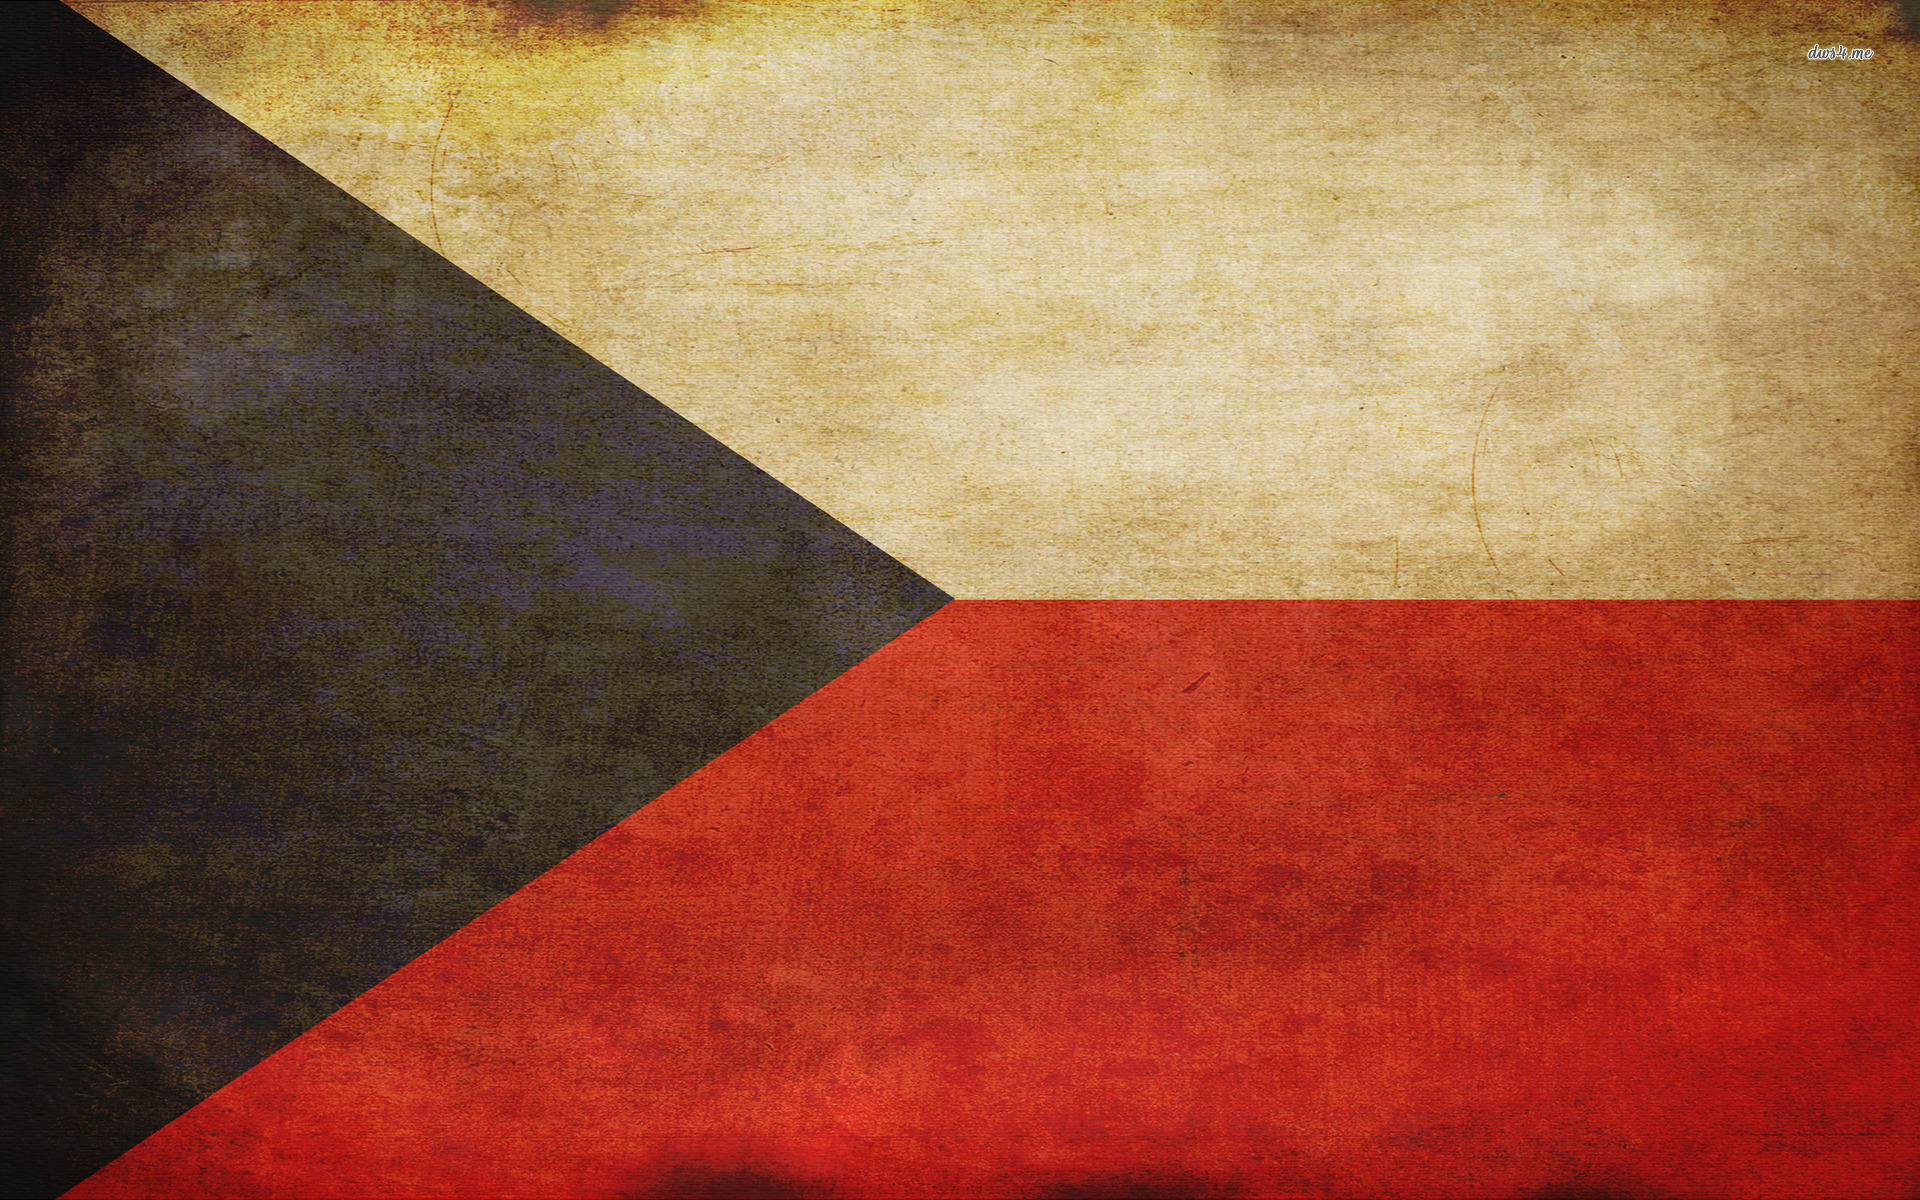 Czech Republic flag wallpaper   Digital Art wallpapers   9233 1920x1200